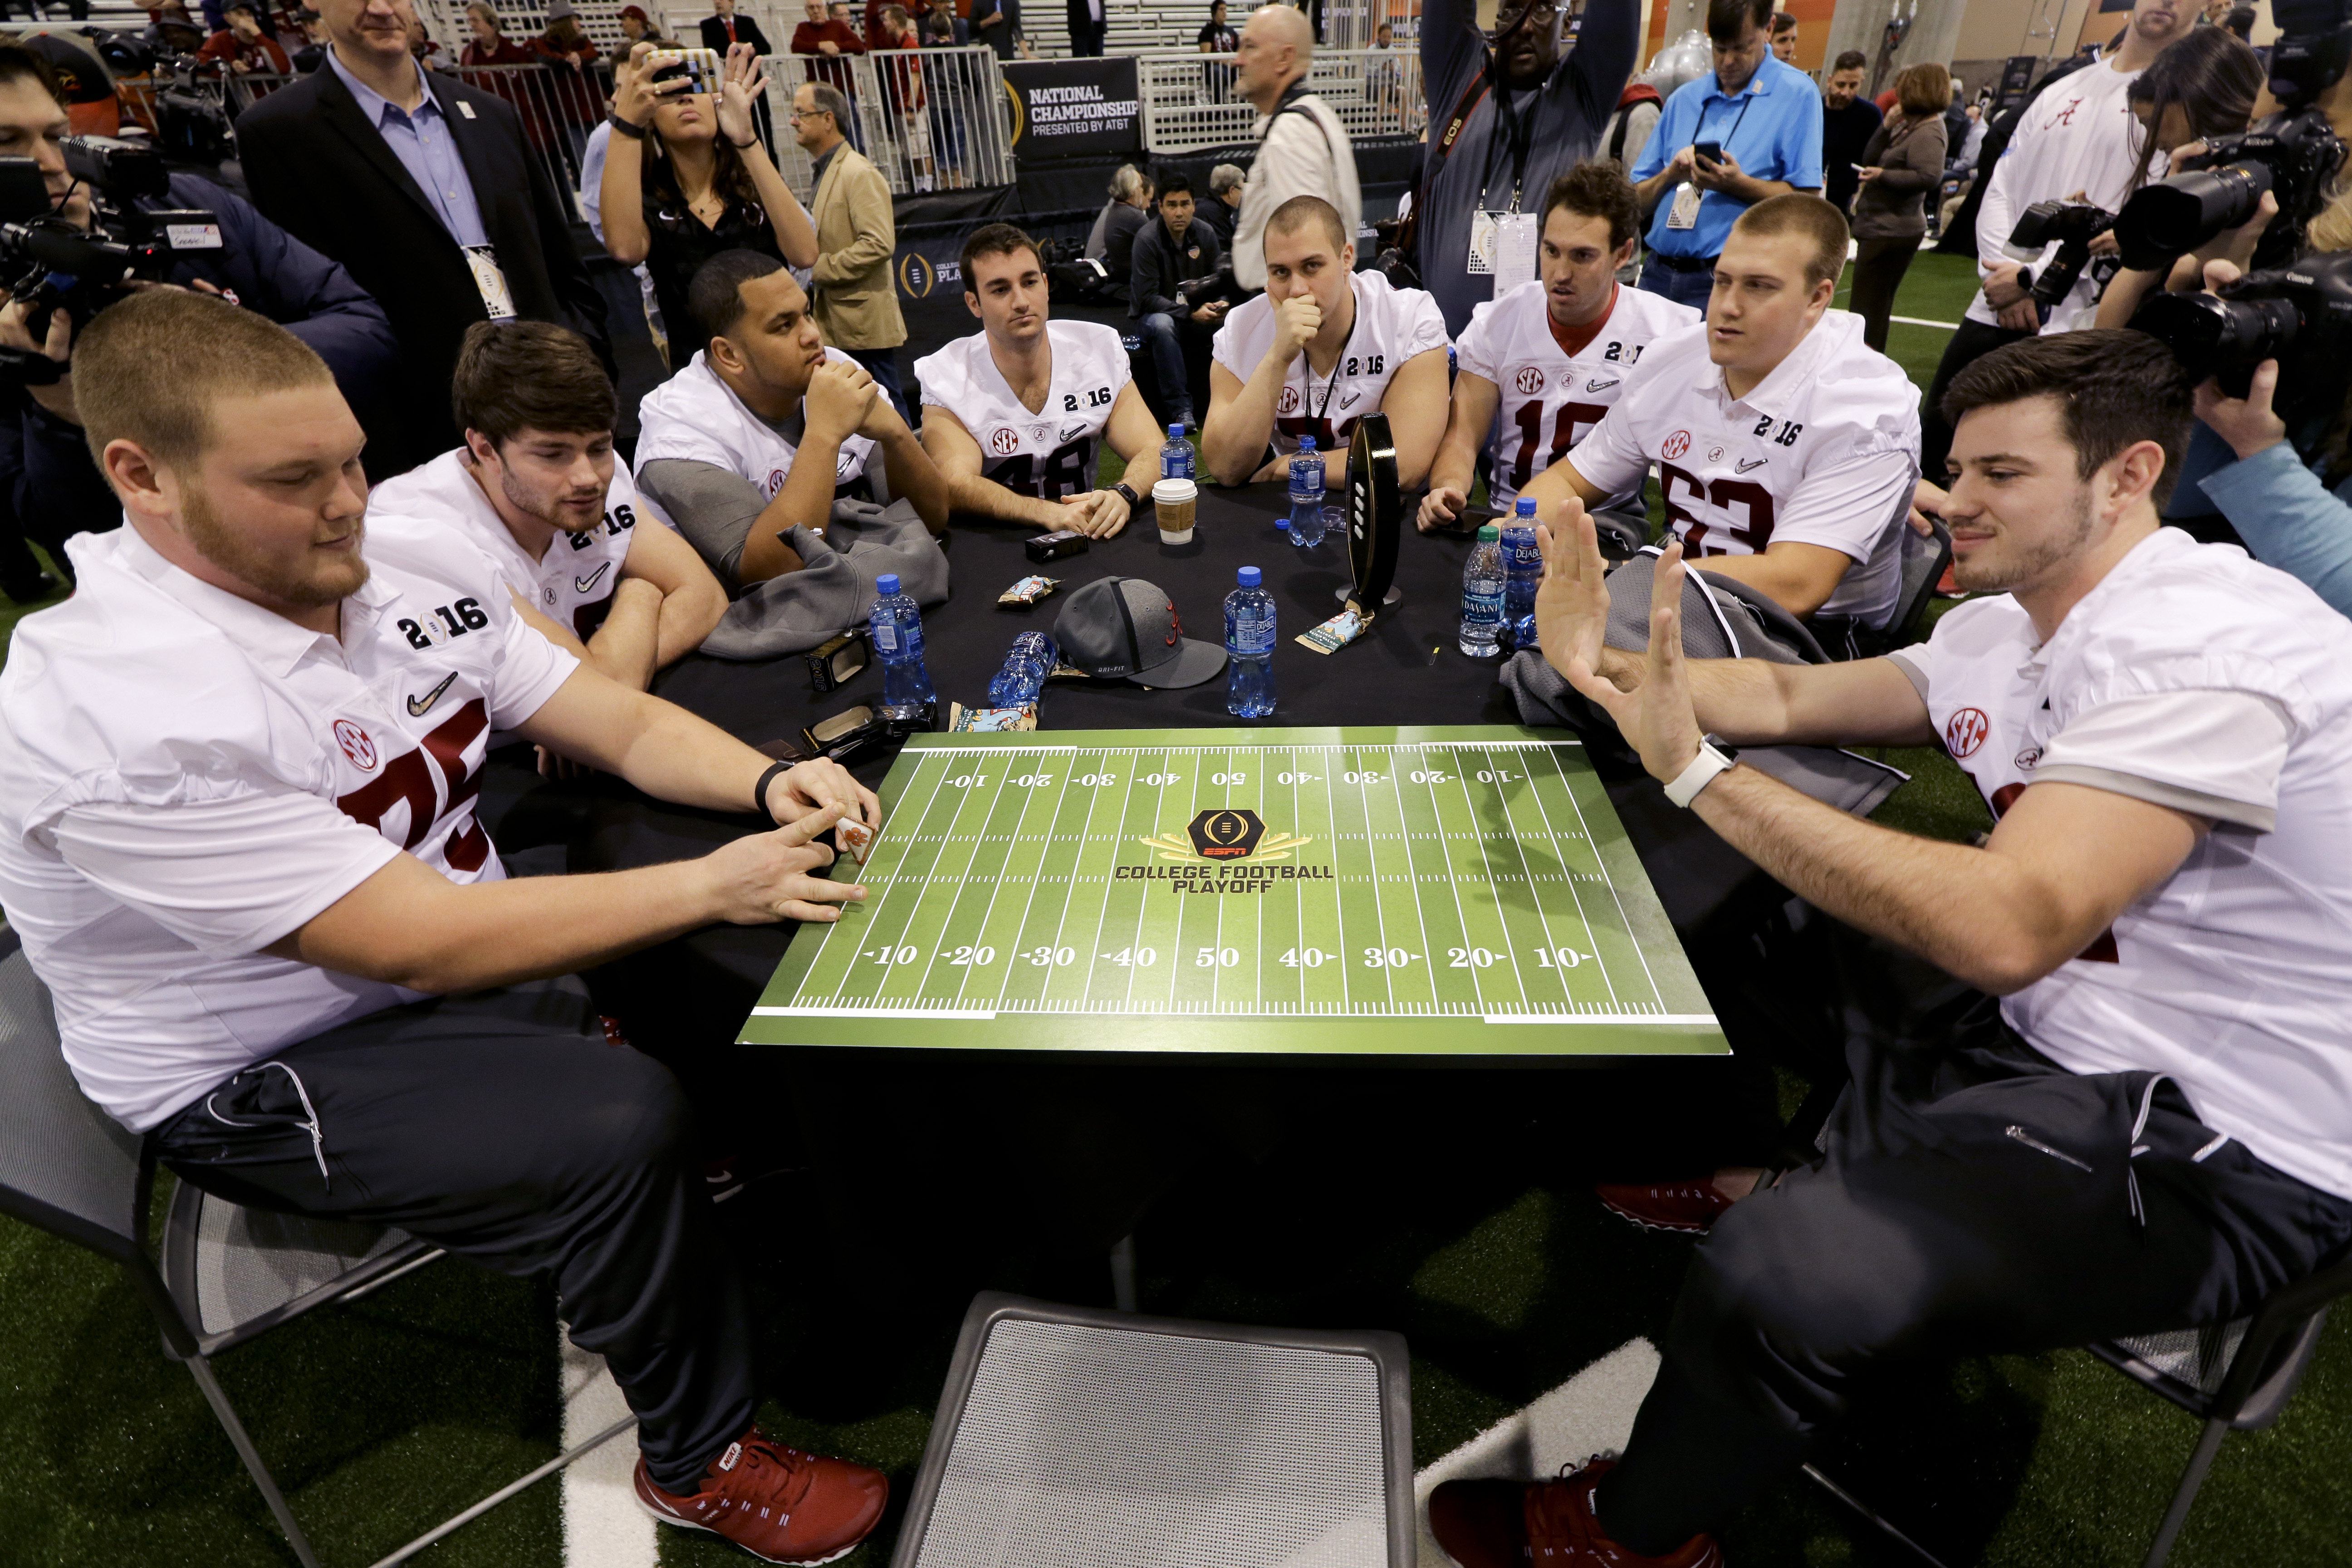 Alabama team members play a game during media day for the NCAA College Football Playoff National Championship in Phoenix, Saturday, Jan. 9, 2016. Alabama will face Clemson in Monday's game. (AP Photo/David J. Phillip)